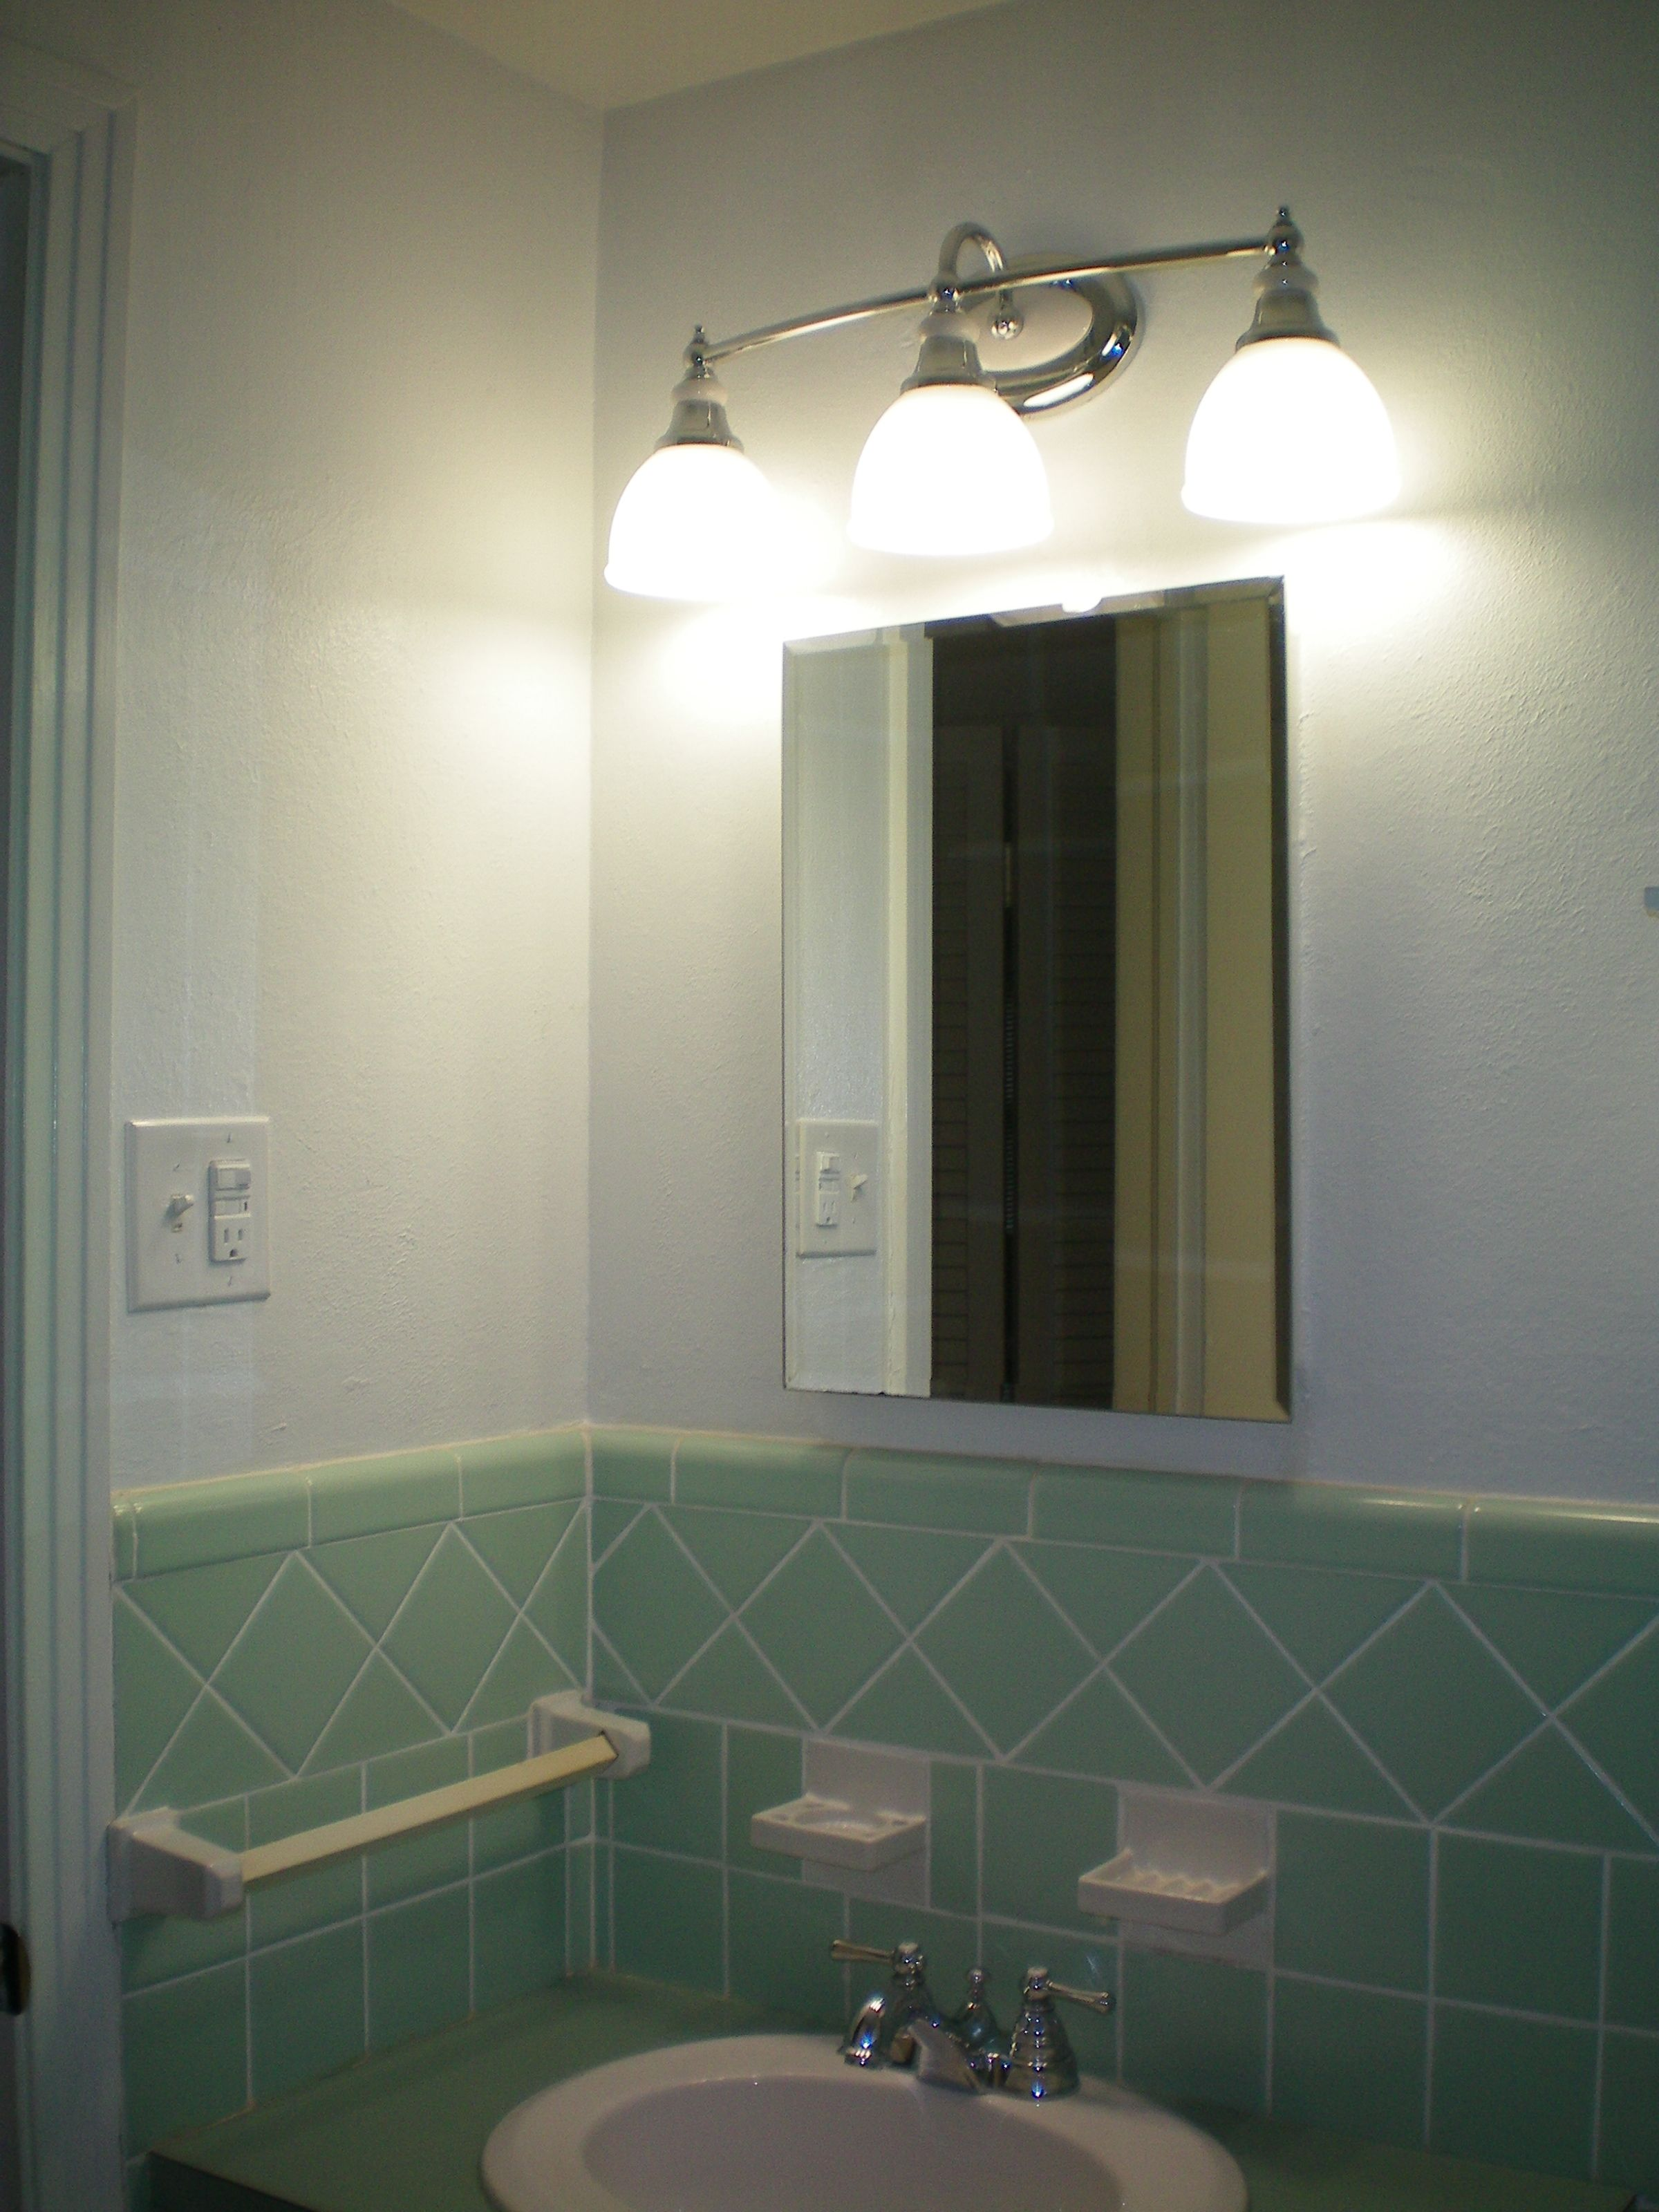 New light fixture and outlets to update our 1950s bathroom  Recent Work  Bathroom Lighting